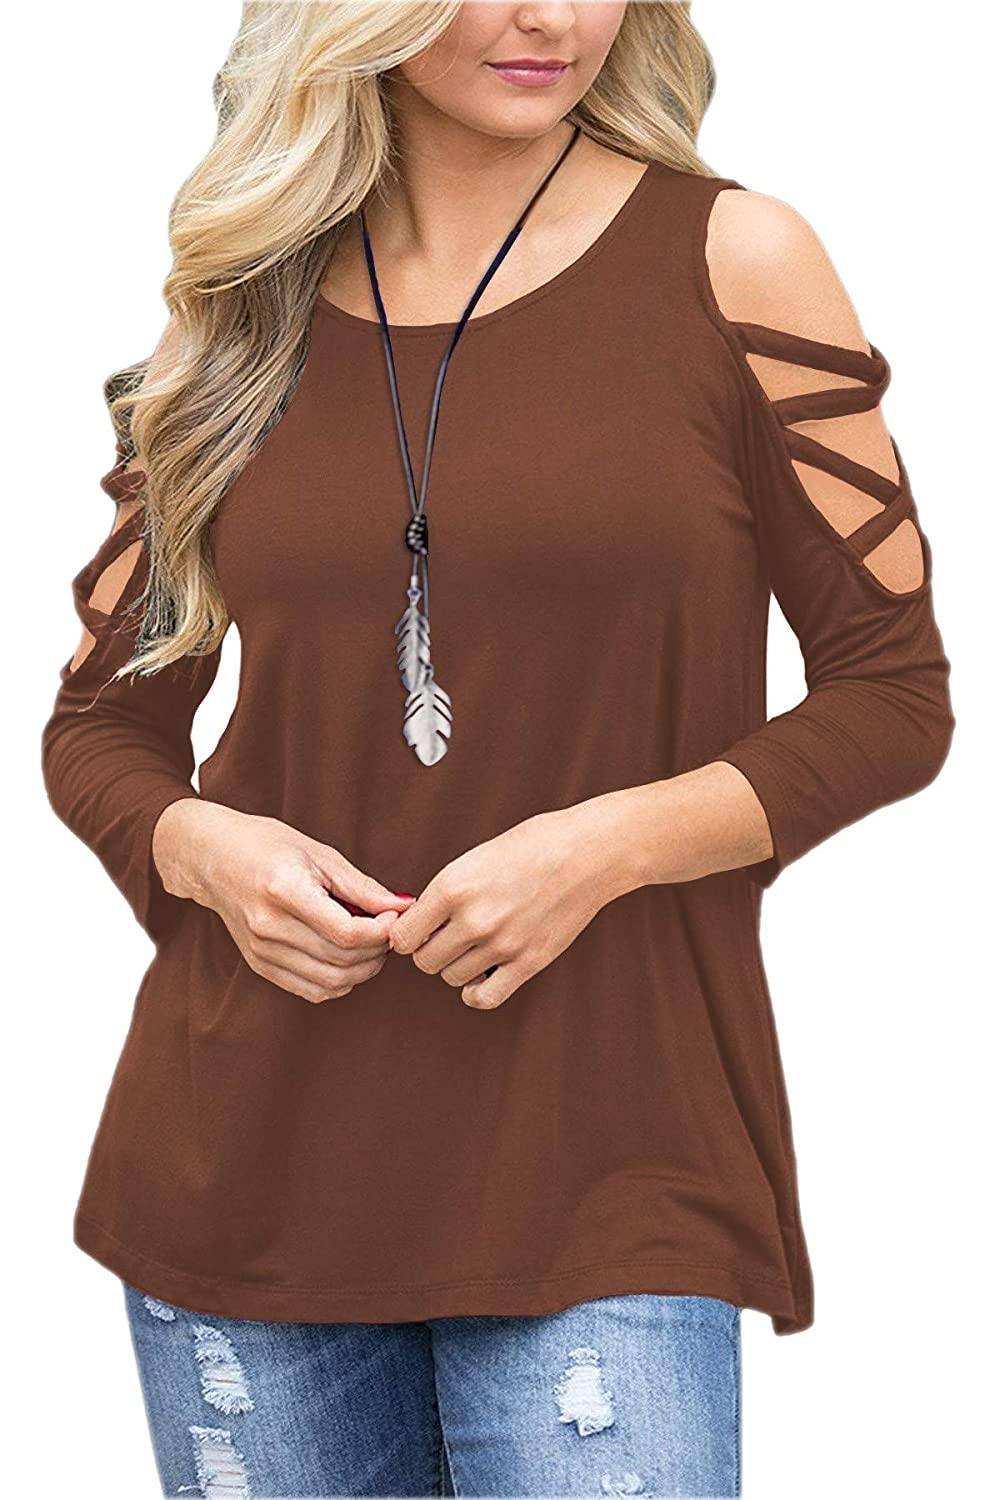 LUOUSE Women's Hollowed Out Shoulder 3/4 Long Sleeve Casual Tunic Blouse Loose T-Shirts Tops T184USf